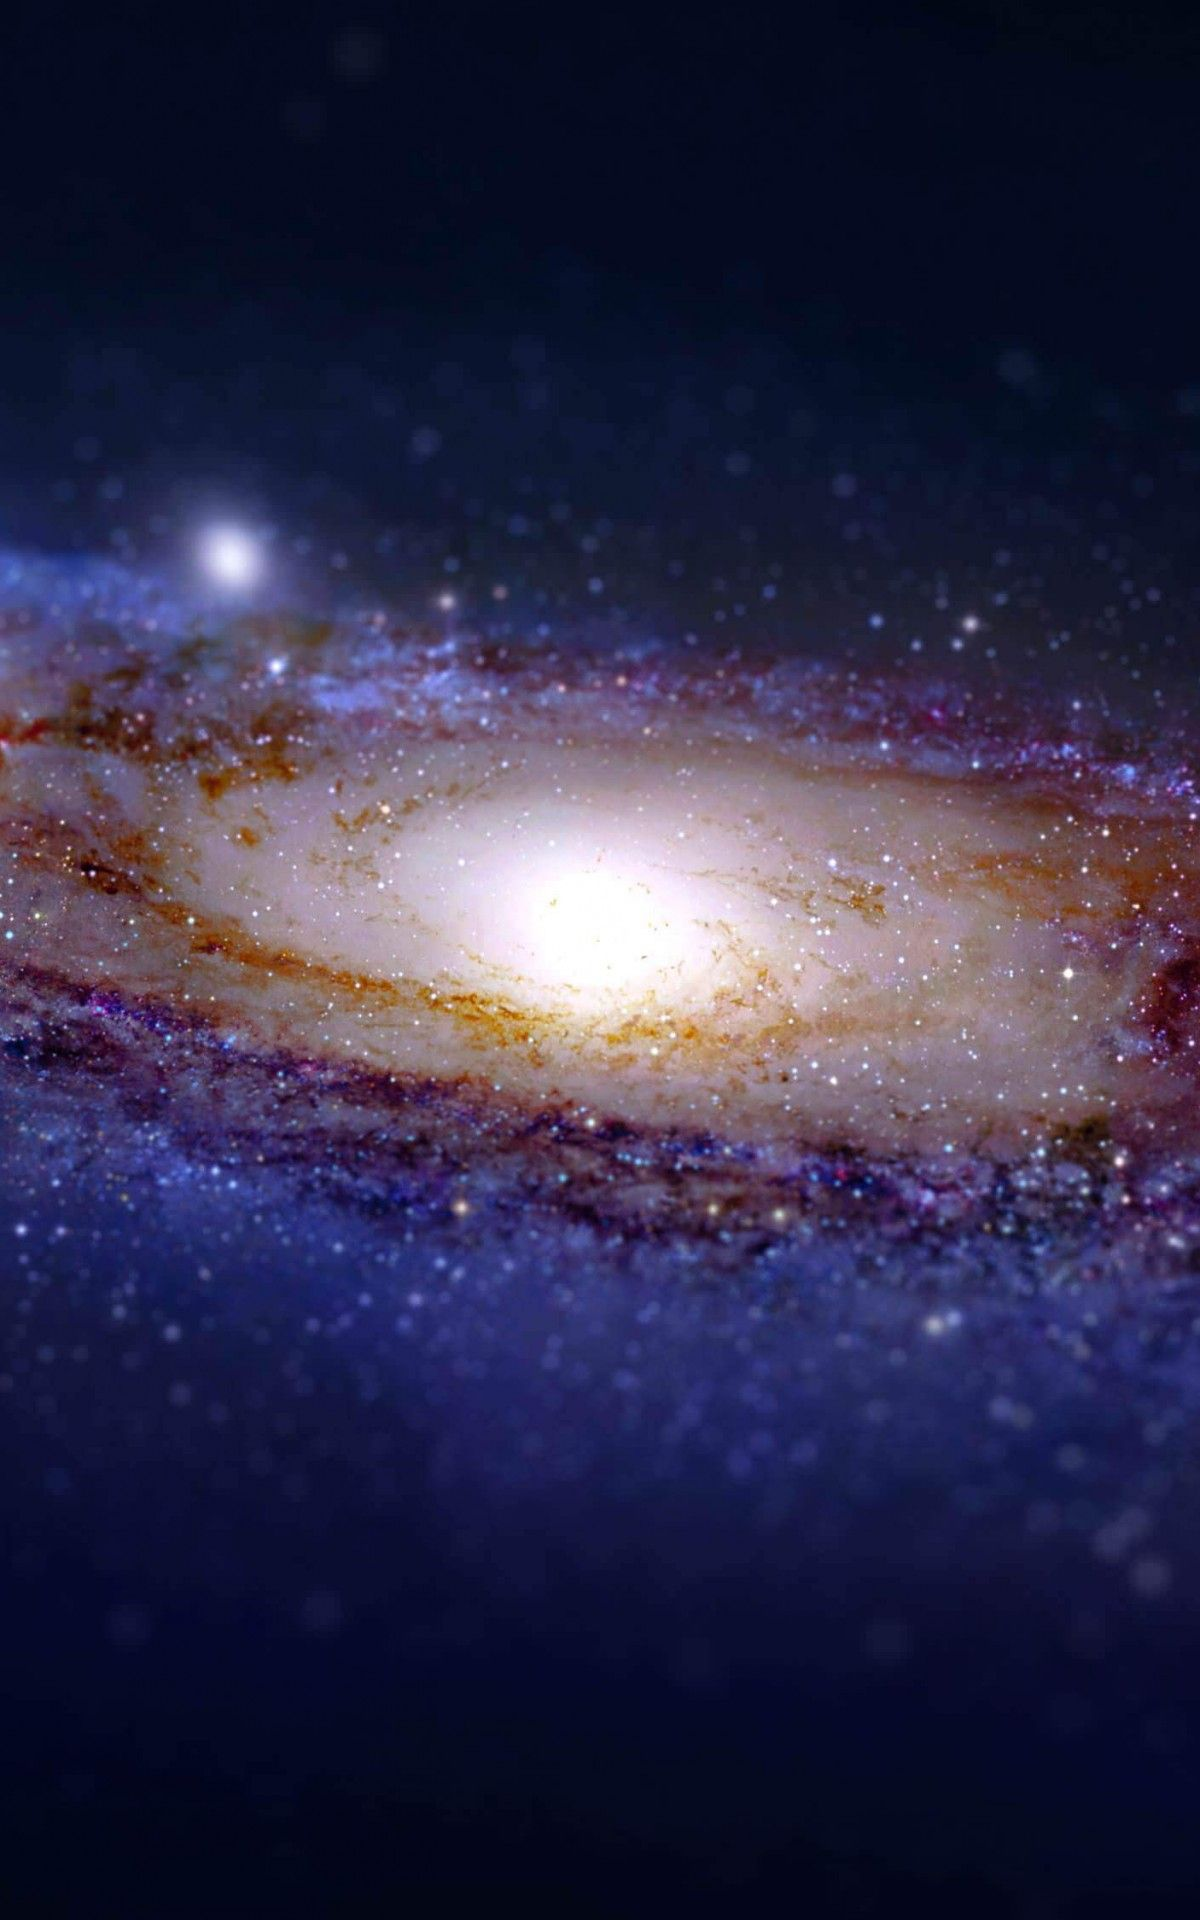 Download Andromeda Galaxy Tilt Shift Hd Wallpaper For